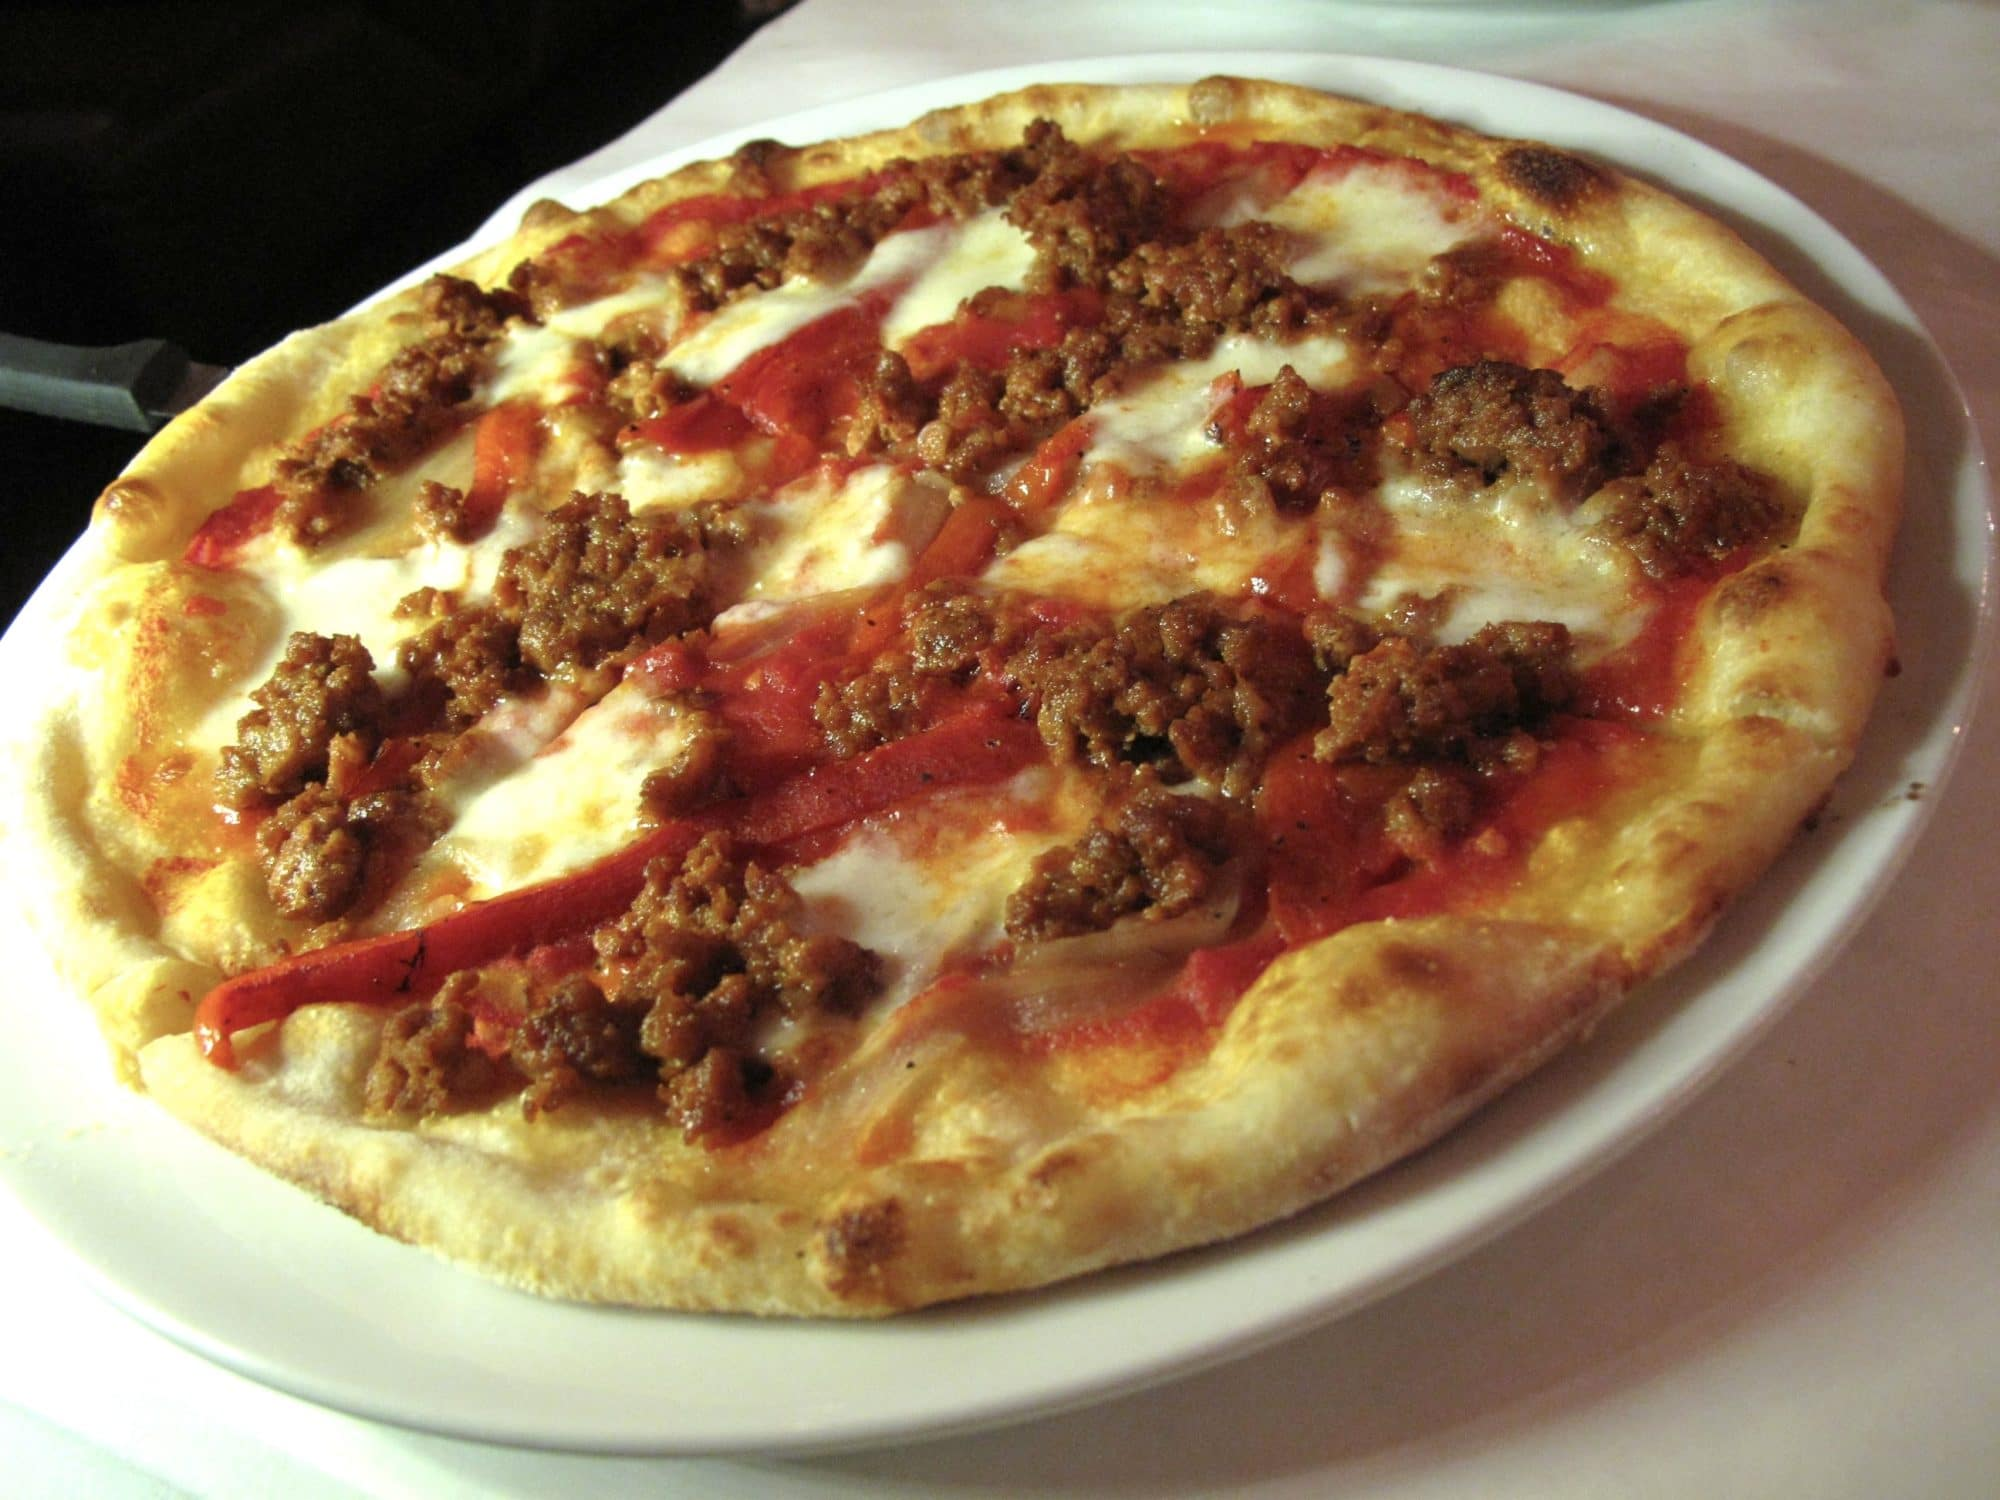 Spicy meat topped pizza at Il Fornello Danforth.